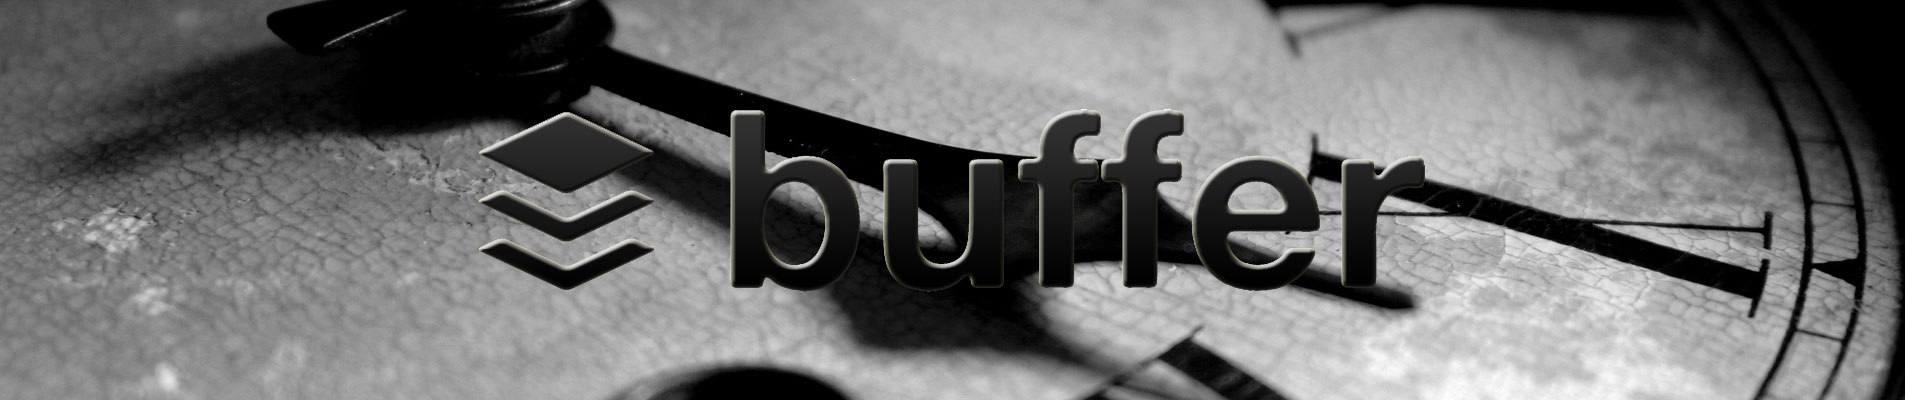 Buffer-feature-image5-1 How Using Buffer Could Simplify Your Social Media Marketing